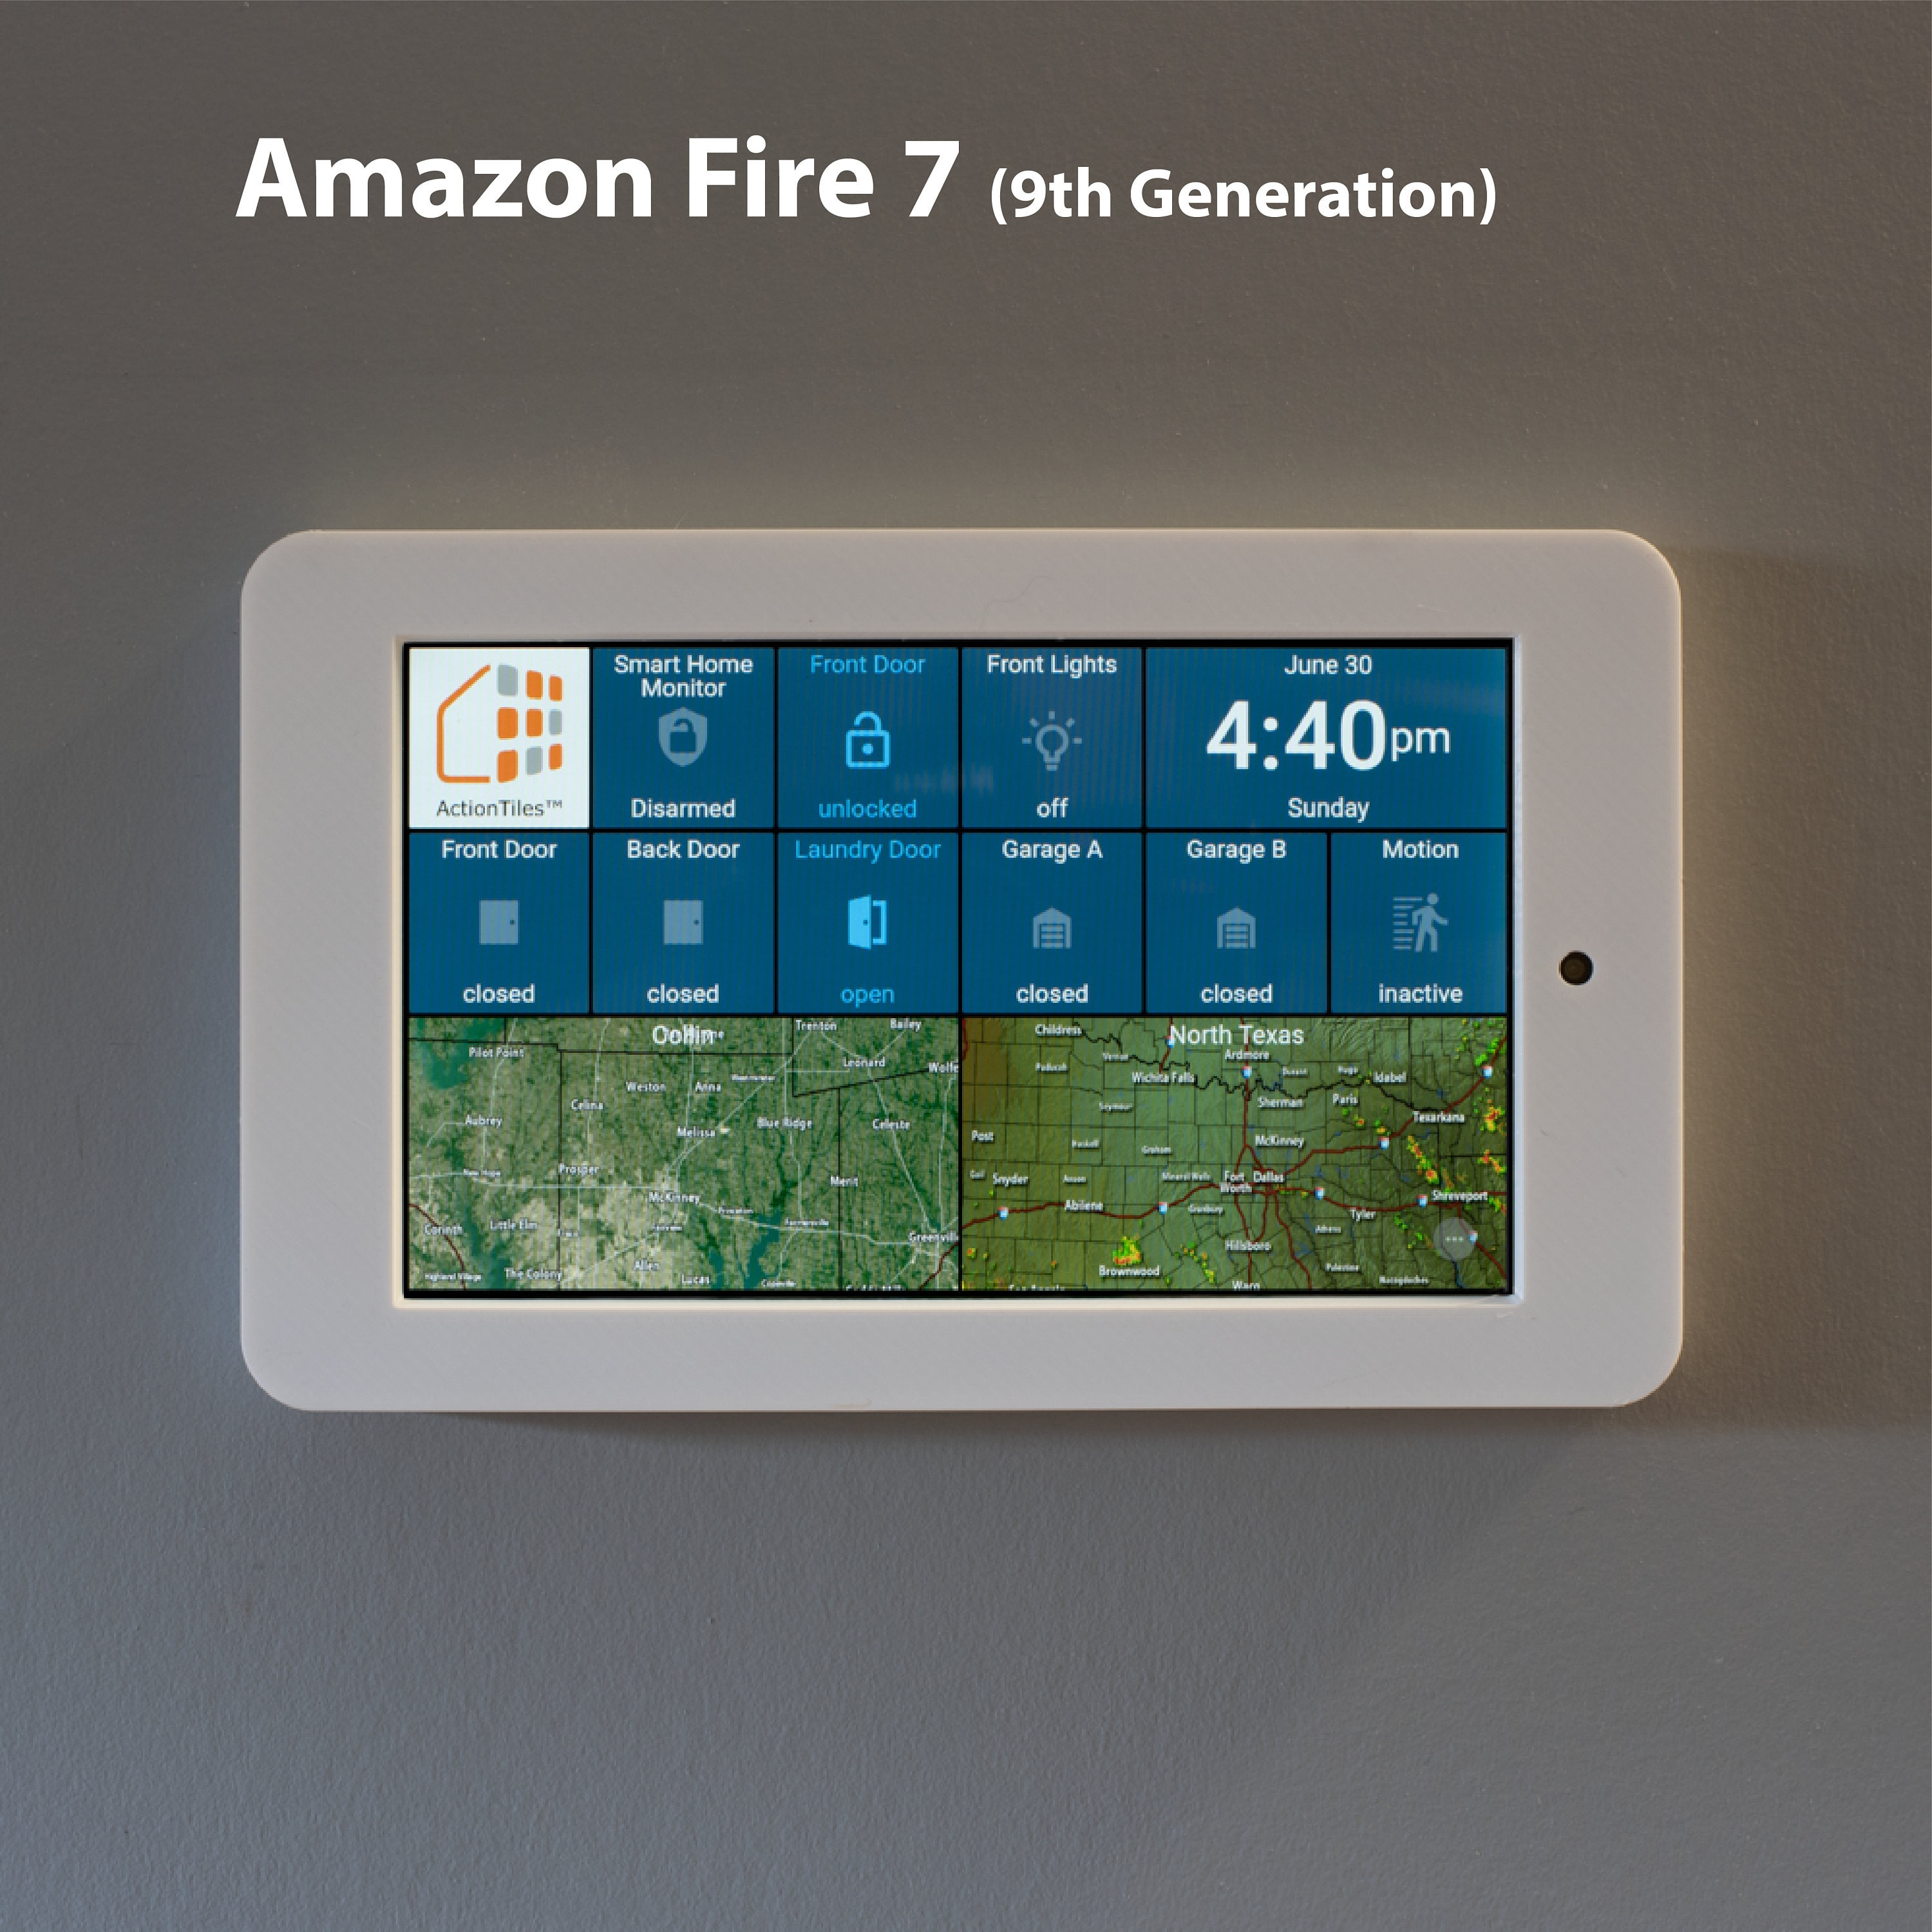 Amazon Fire 7 Tablet Wall Mount (new 9th generation